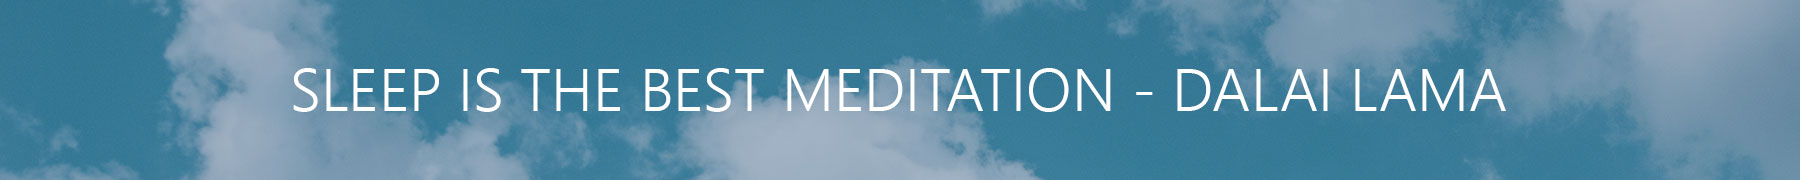 sleep is the best meditation image